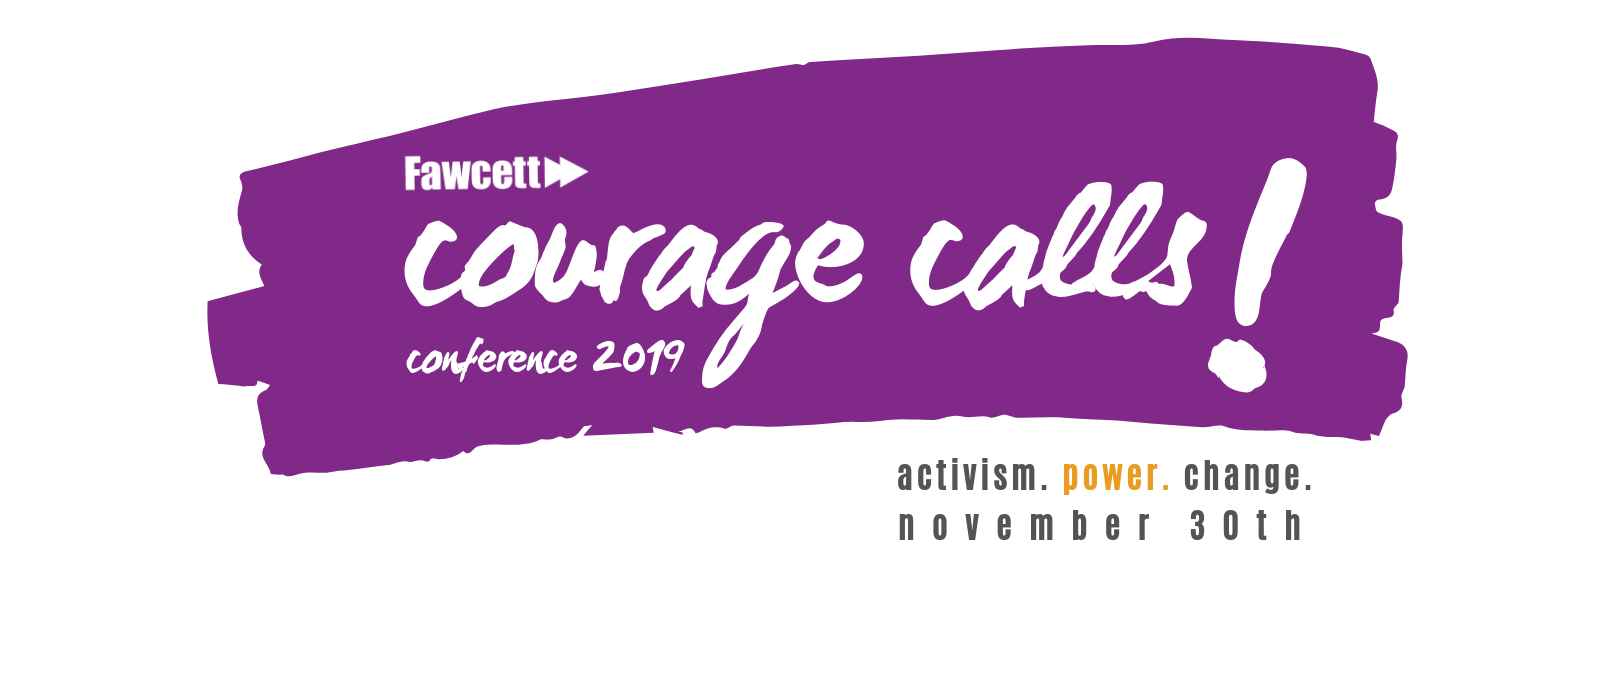 Courage Calls! Conference 2019 - 1/3 off for equality organisations